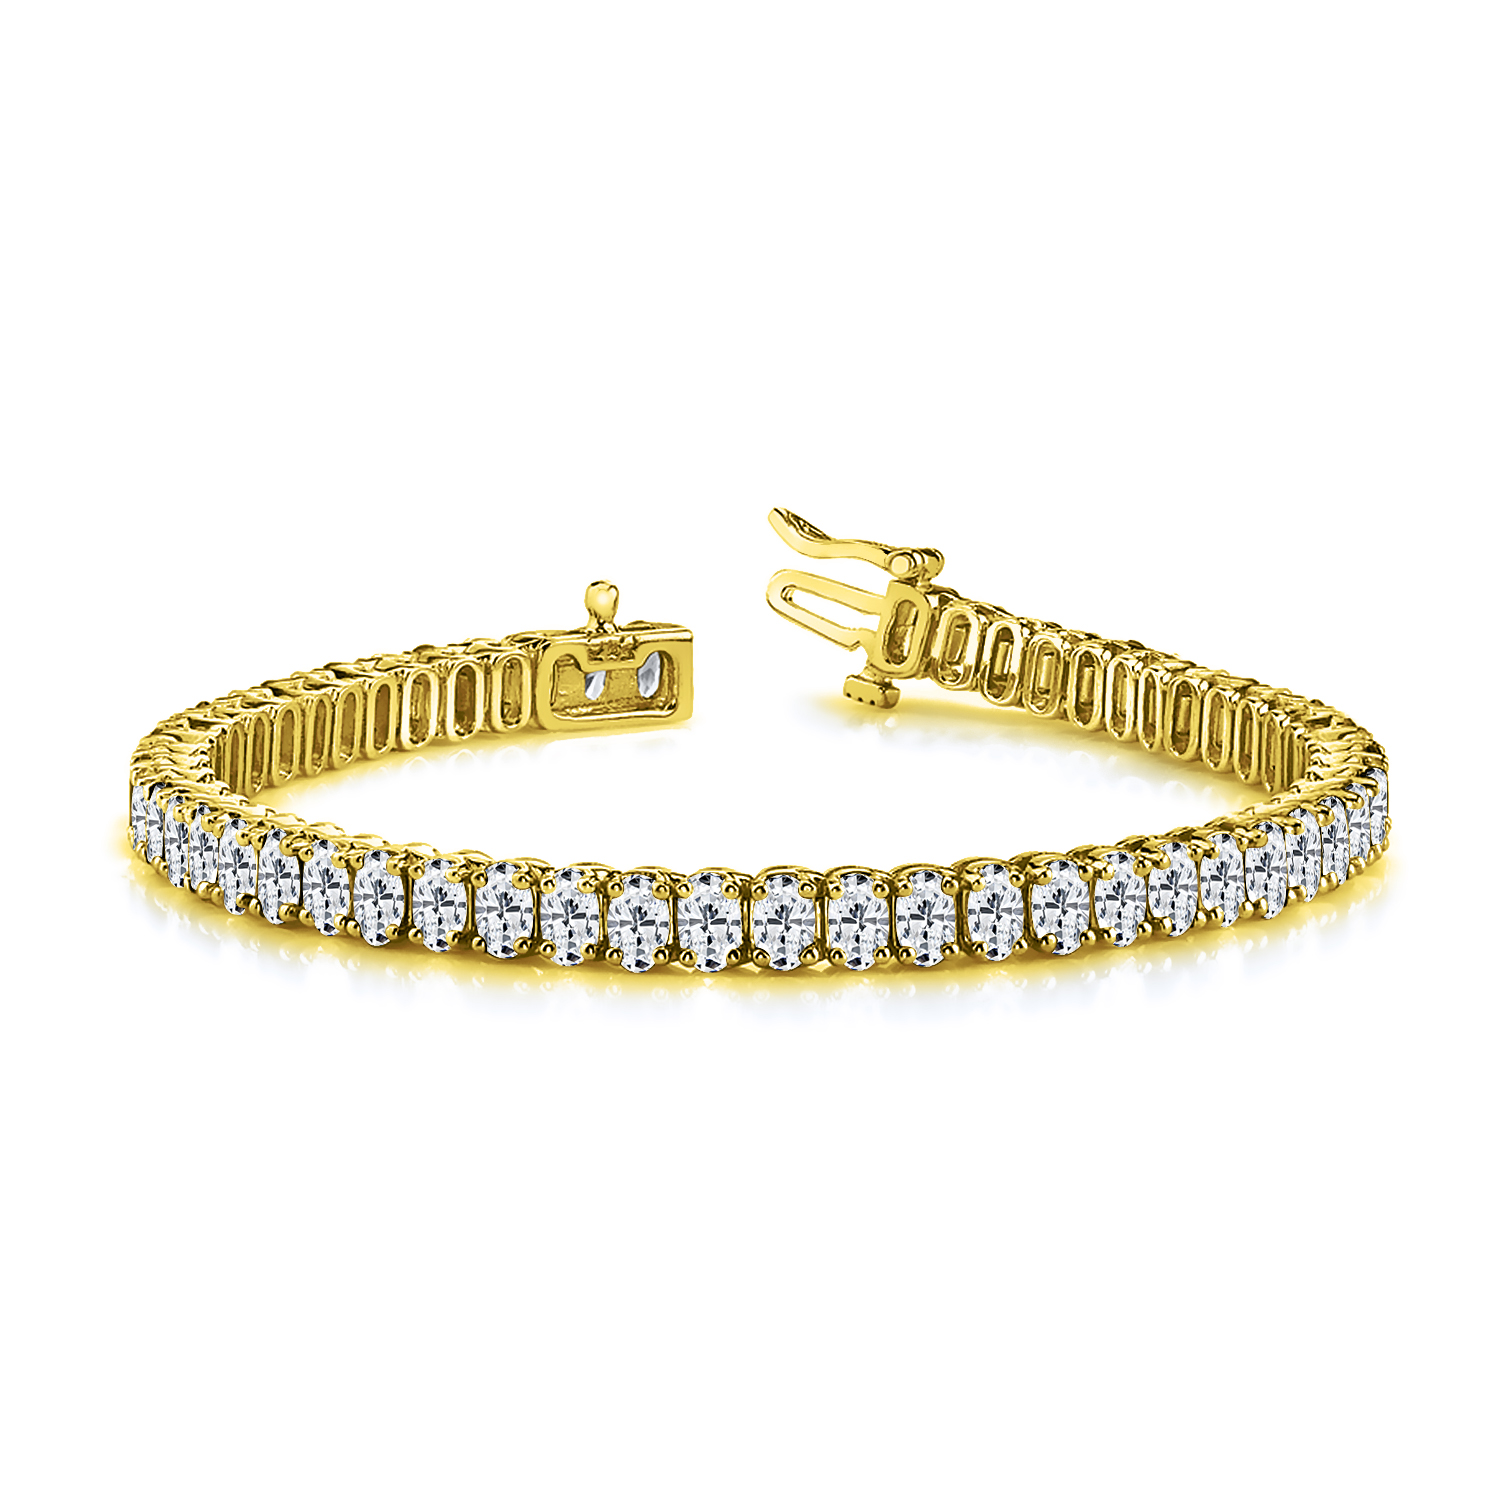 Certified 14k Yellow Gold Oval Diamond Tennis Bracelet 12.00 ct. tw. (I-J, I1)